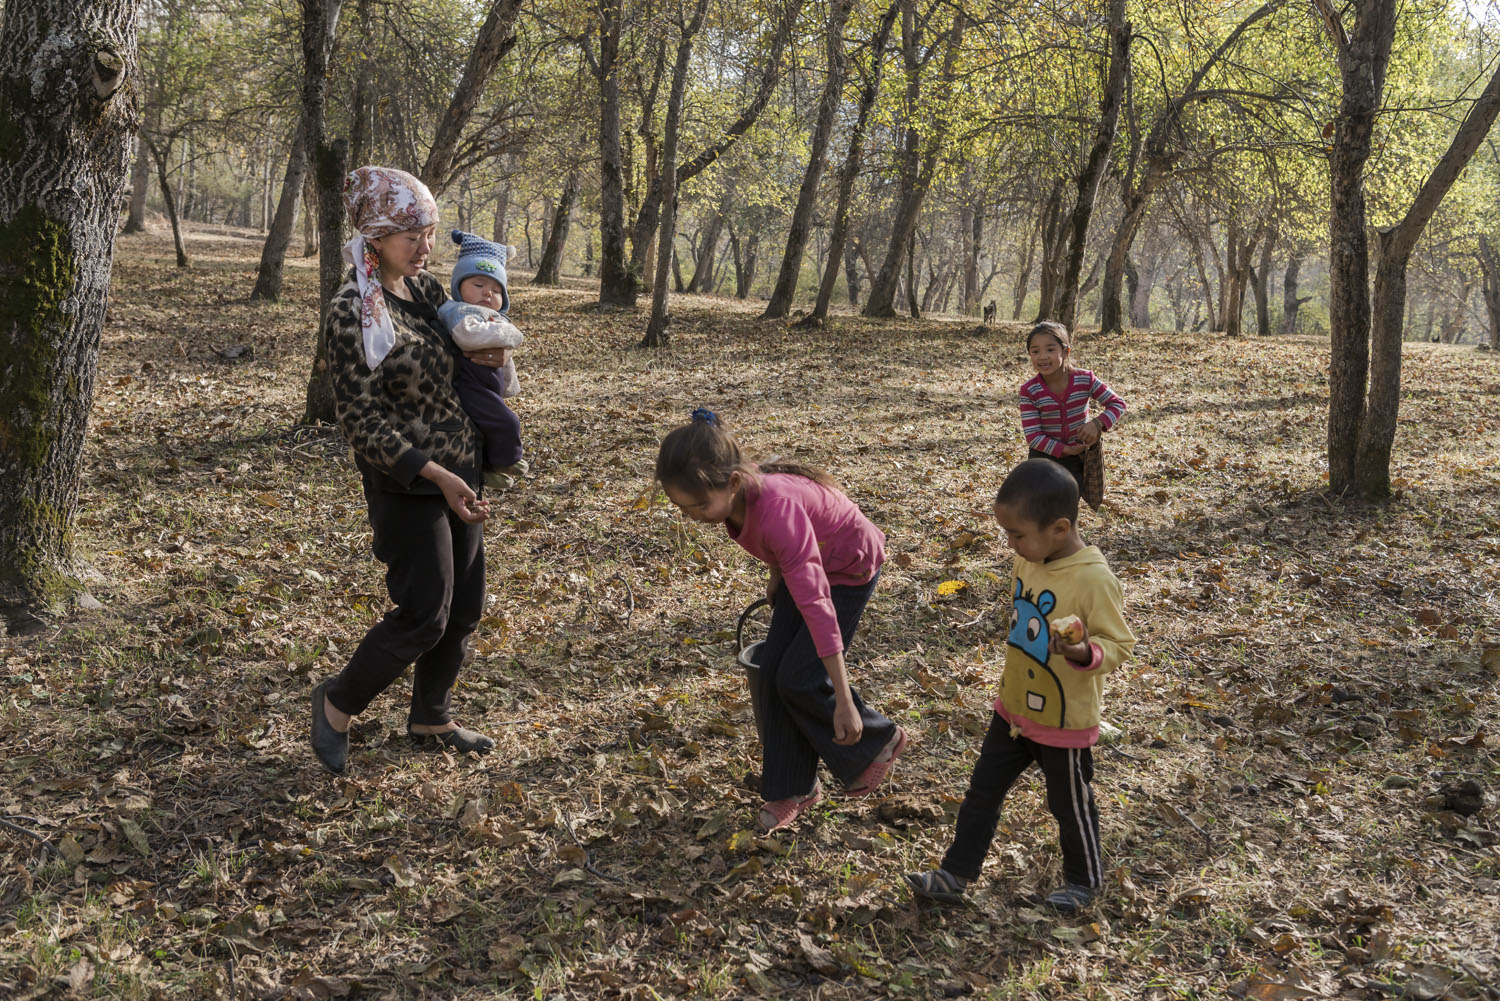 walnuts-picking-kyrgyzstan-child-arslanbob-soviet-union-russia-picnic-camping-family-picking-walnuts.jpg